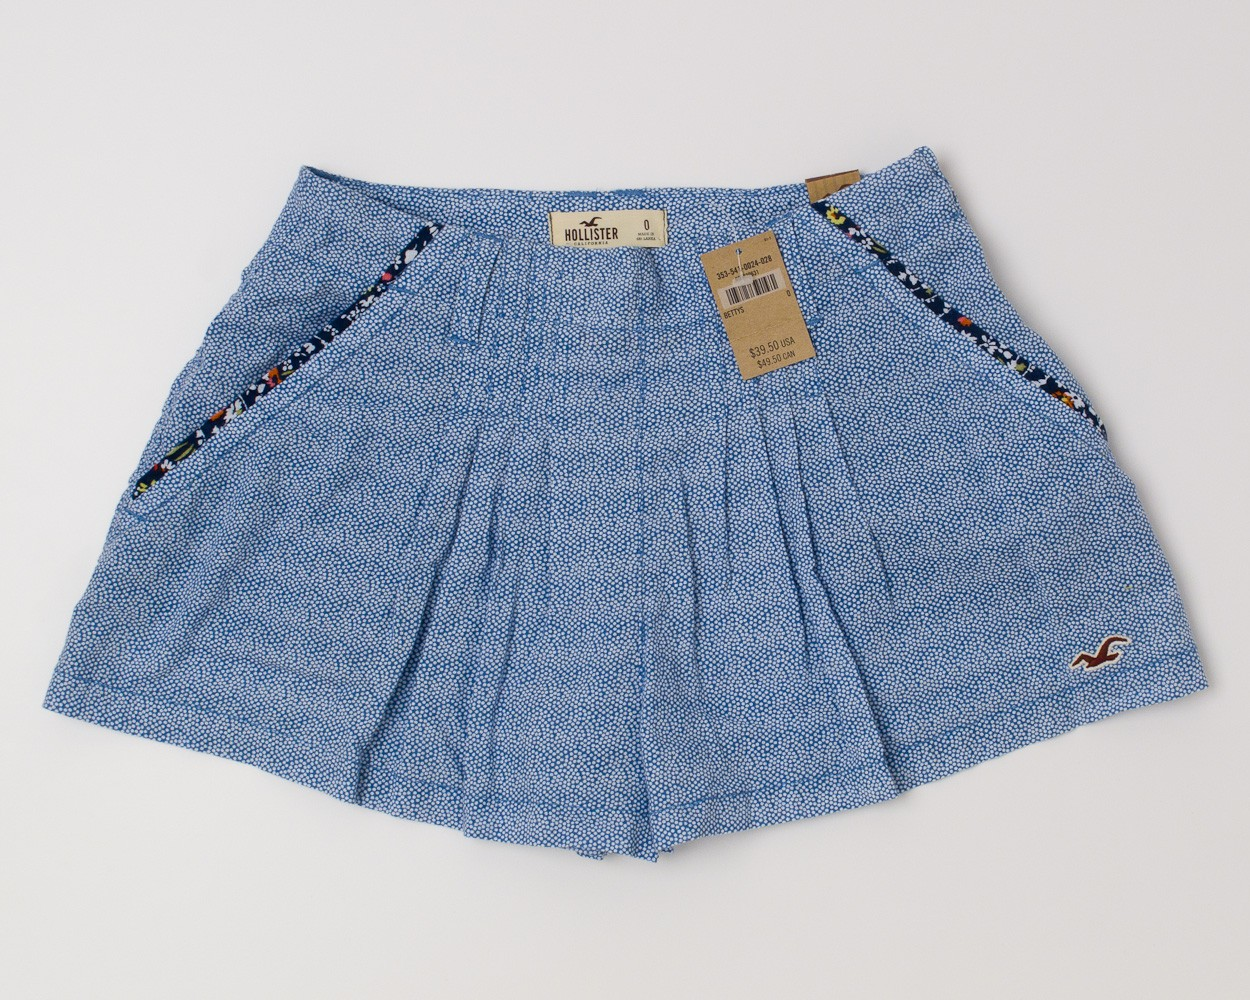 hollister shorts for girls - photo #47